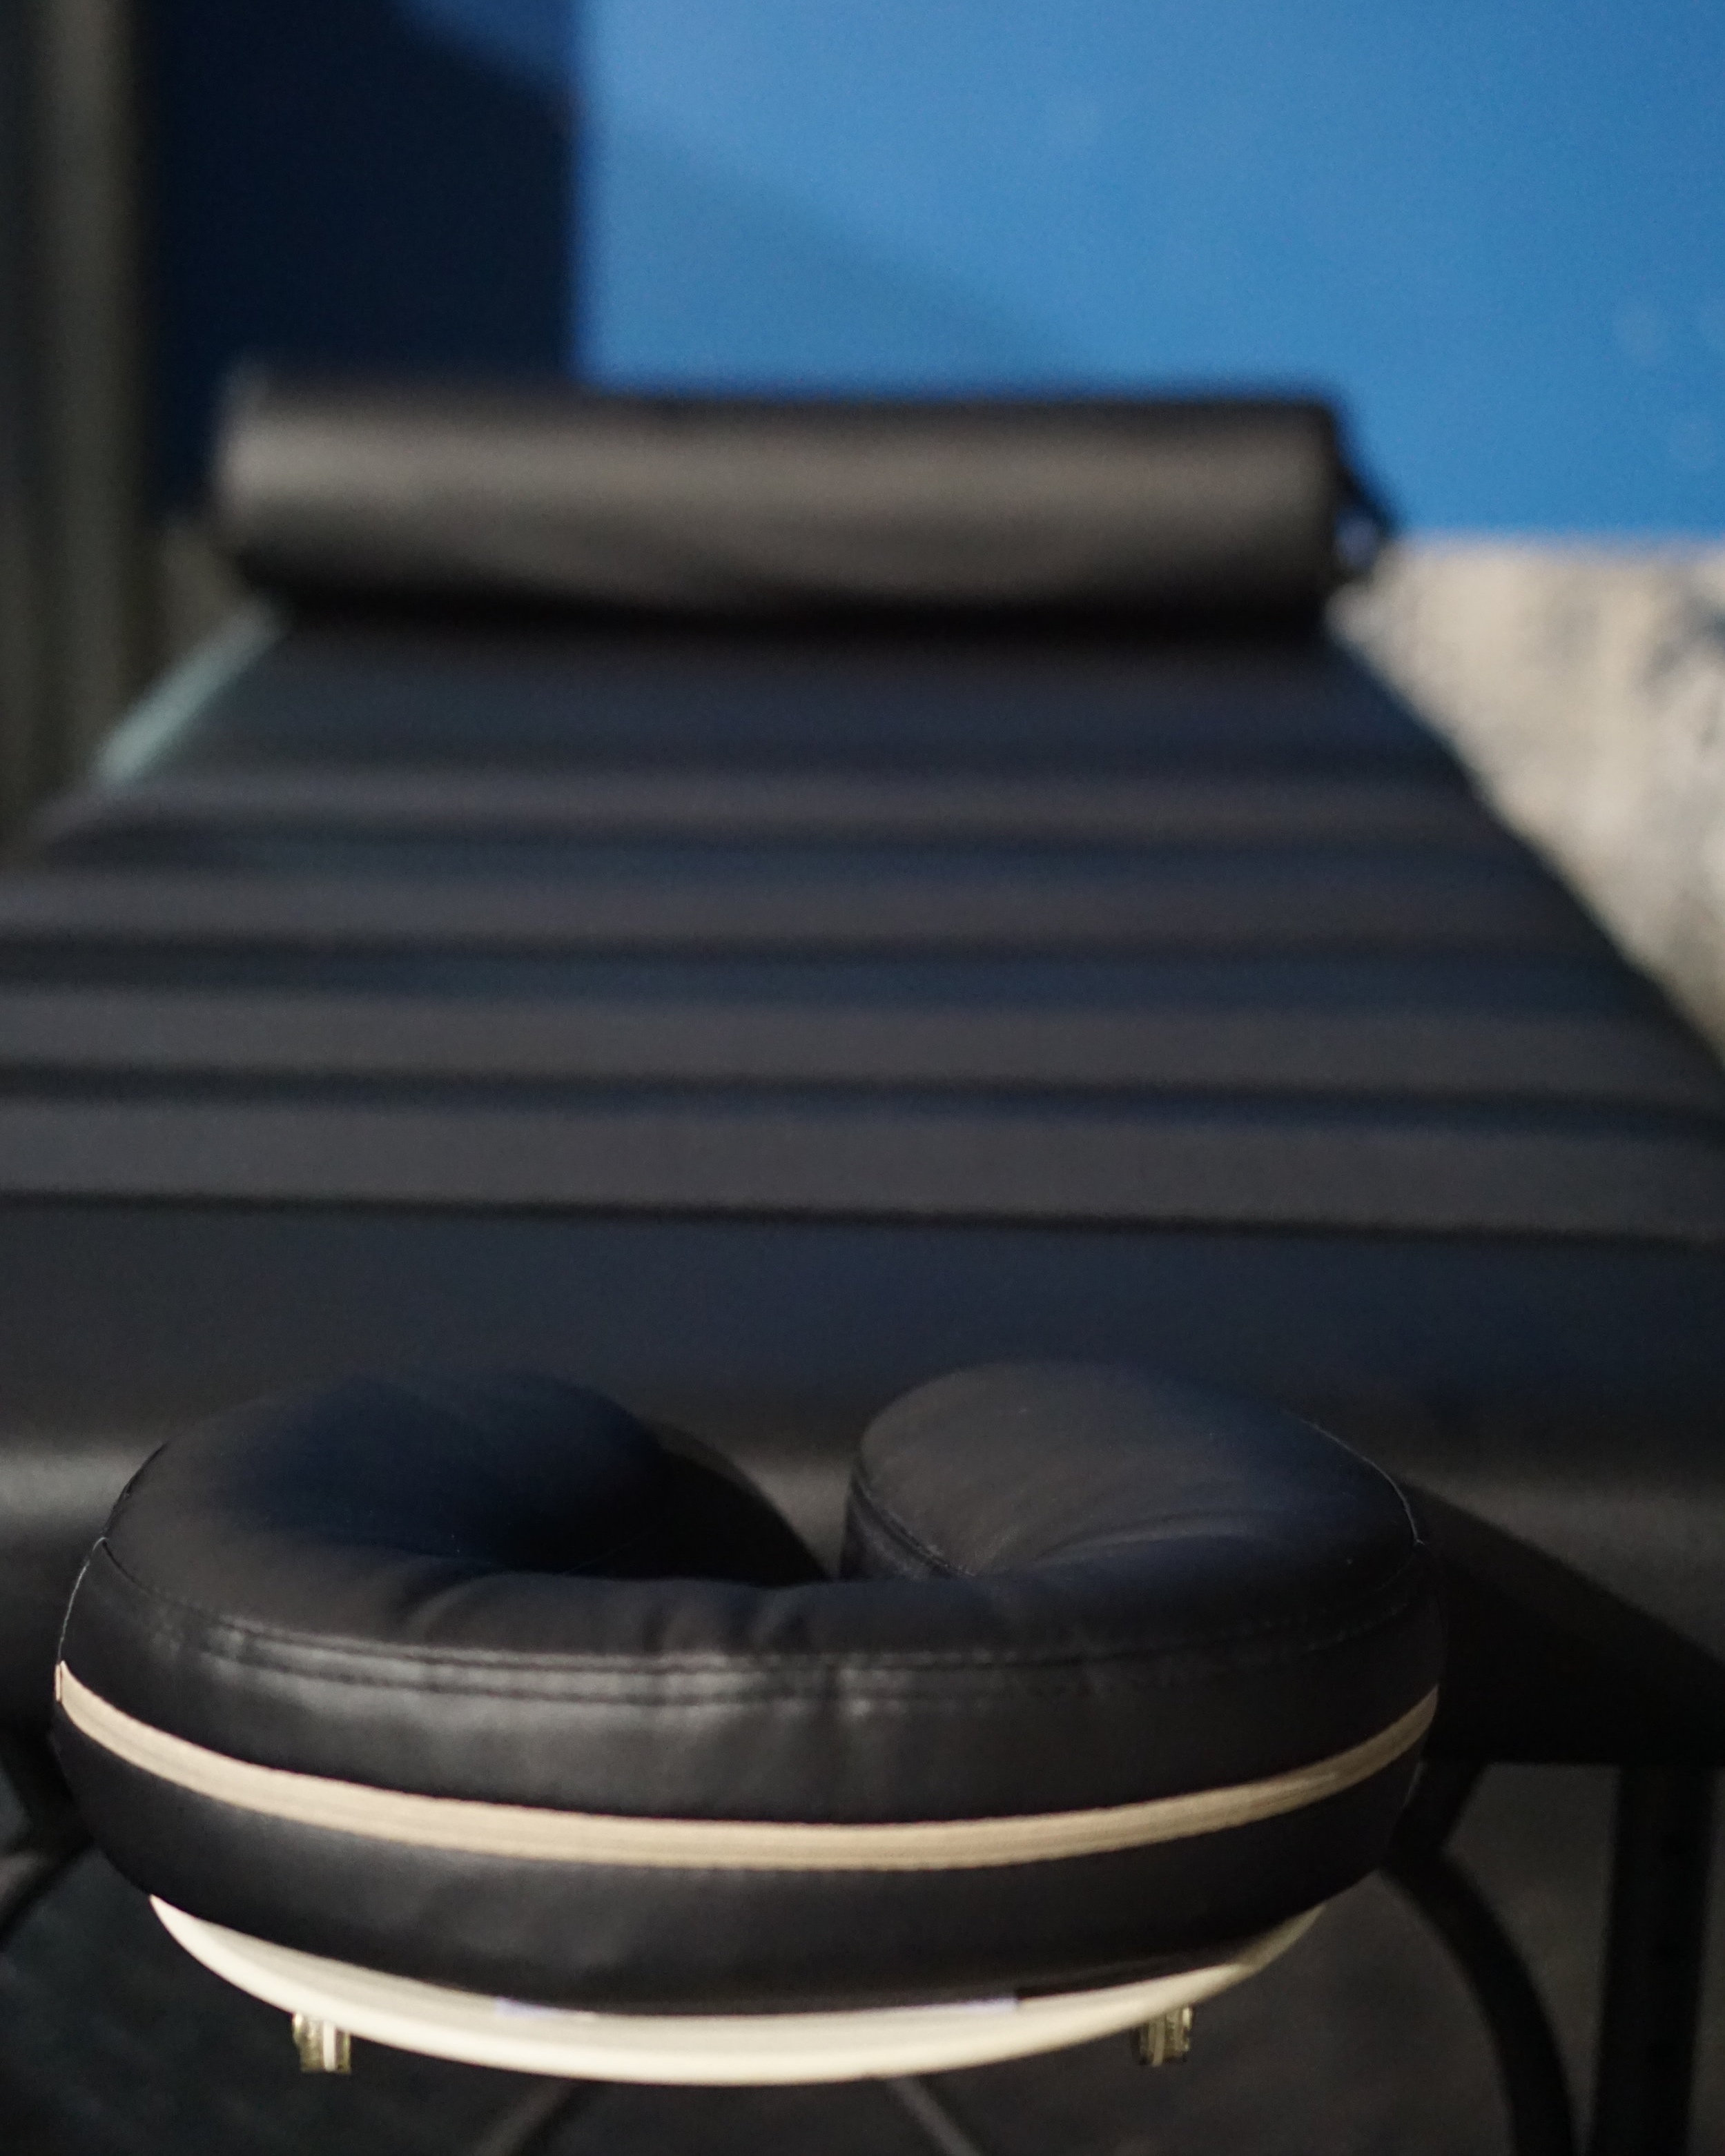 """Spot Cryotherapy - Our cryoTHERAPY spot treatment targetS very specific areas anD reduceS pain, inflammation and swelling. This can be used for a variety of ailments including post surgical treatment, rashes, tendonitis, arthritis, joint pain, eczema, psoriasis, sprains and strains. This is very similar to direct icing, although our 6 to 7 minute treatments bring benefits that exceed hours of icing due to this """"outside in"""" therapy."""